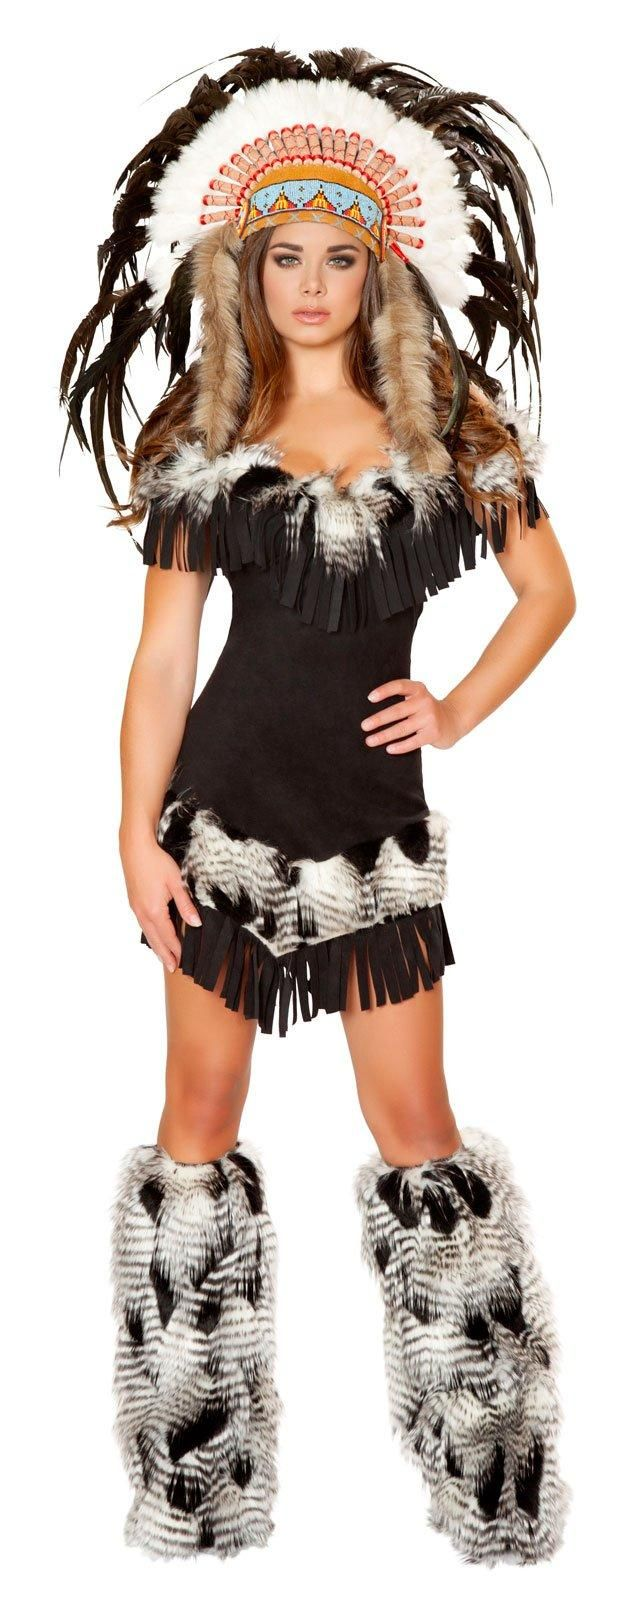 Cherokee Womens Princess Indian Costume from Buycostumes.com  sc 1 st  Pinterest & Cherokee Womens Princess Indian Costume from Buycostumes.com ...